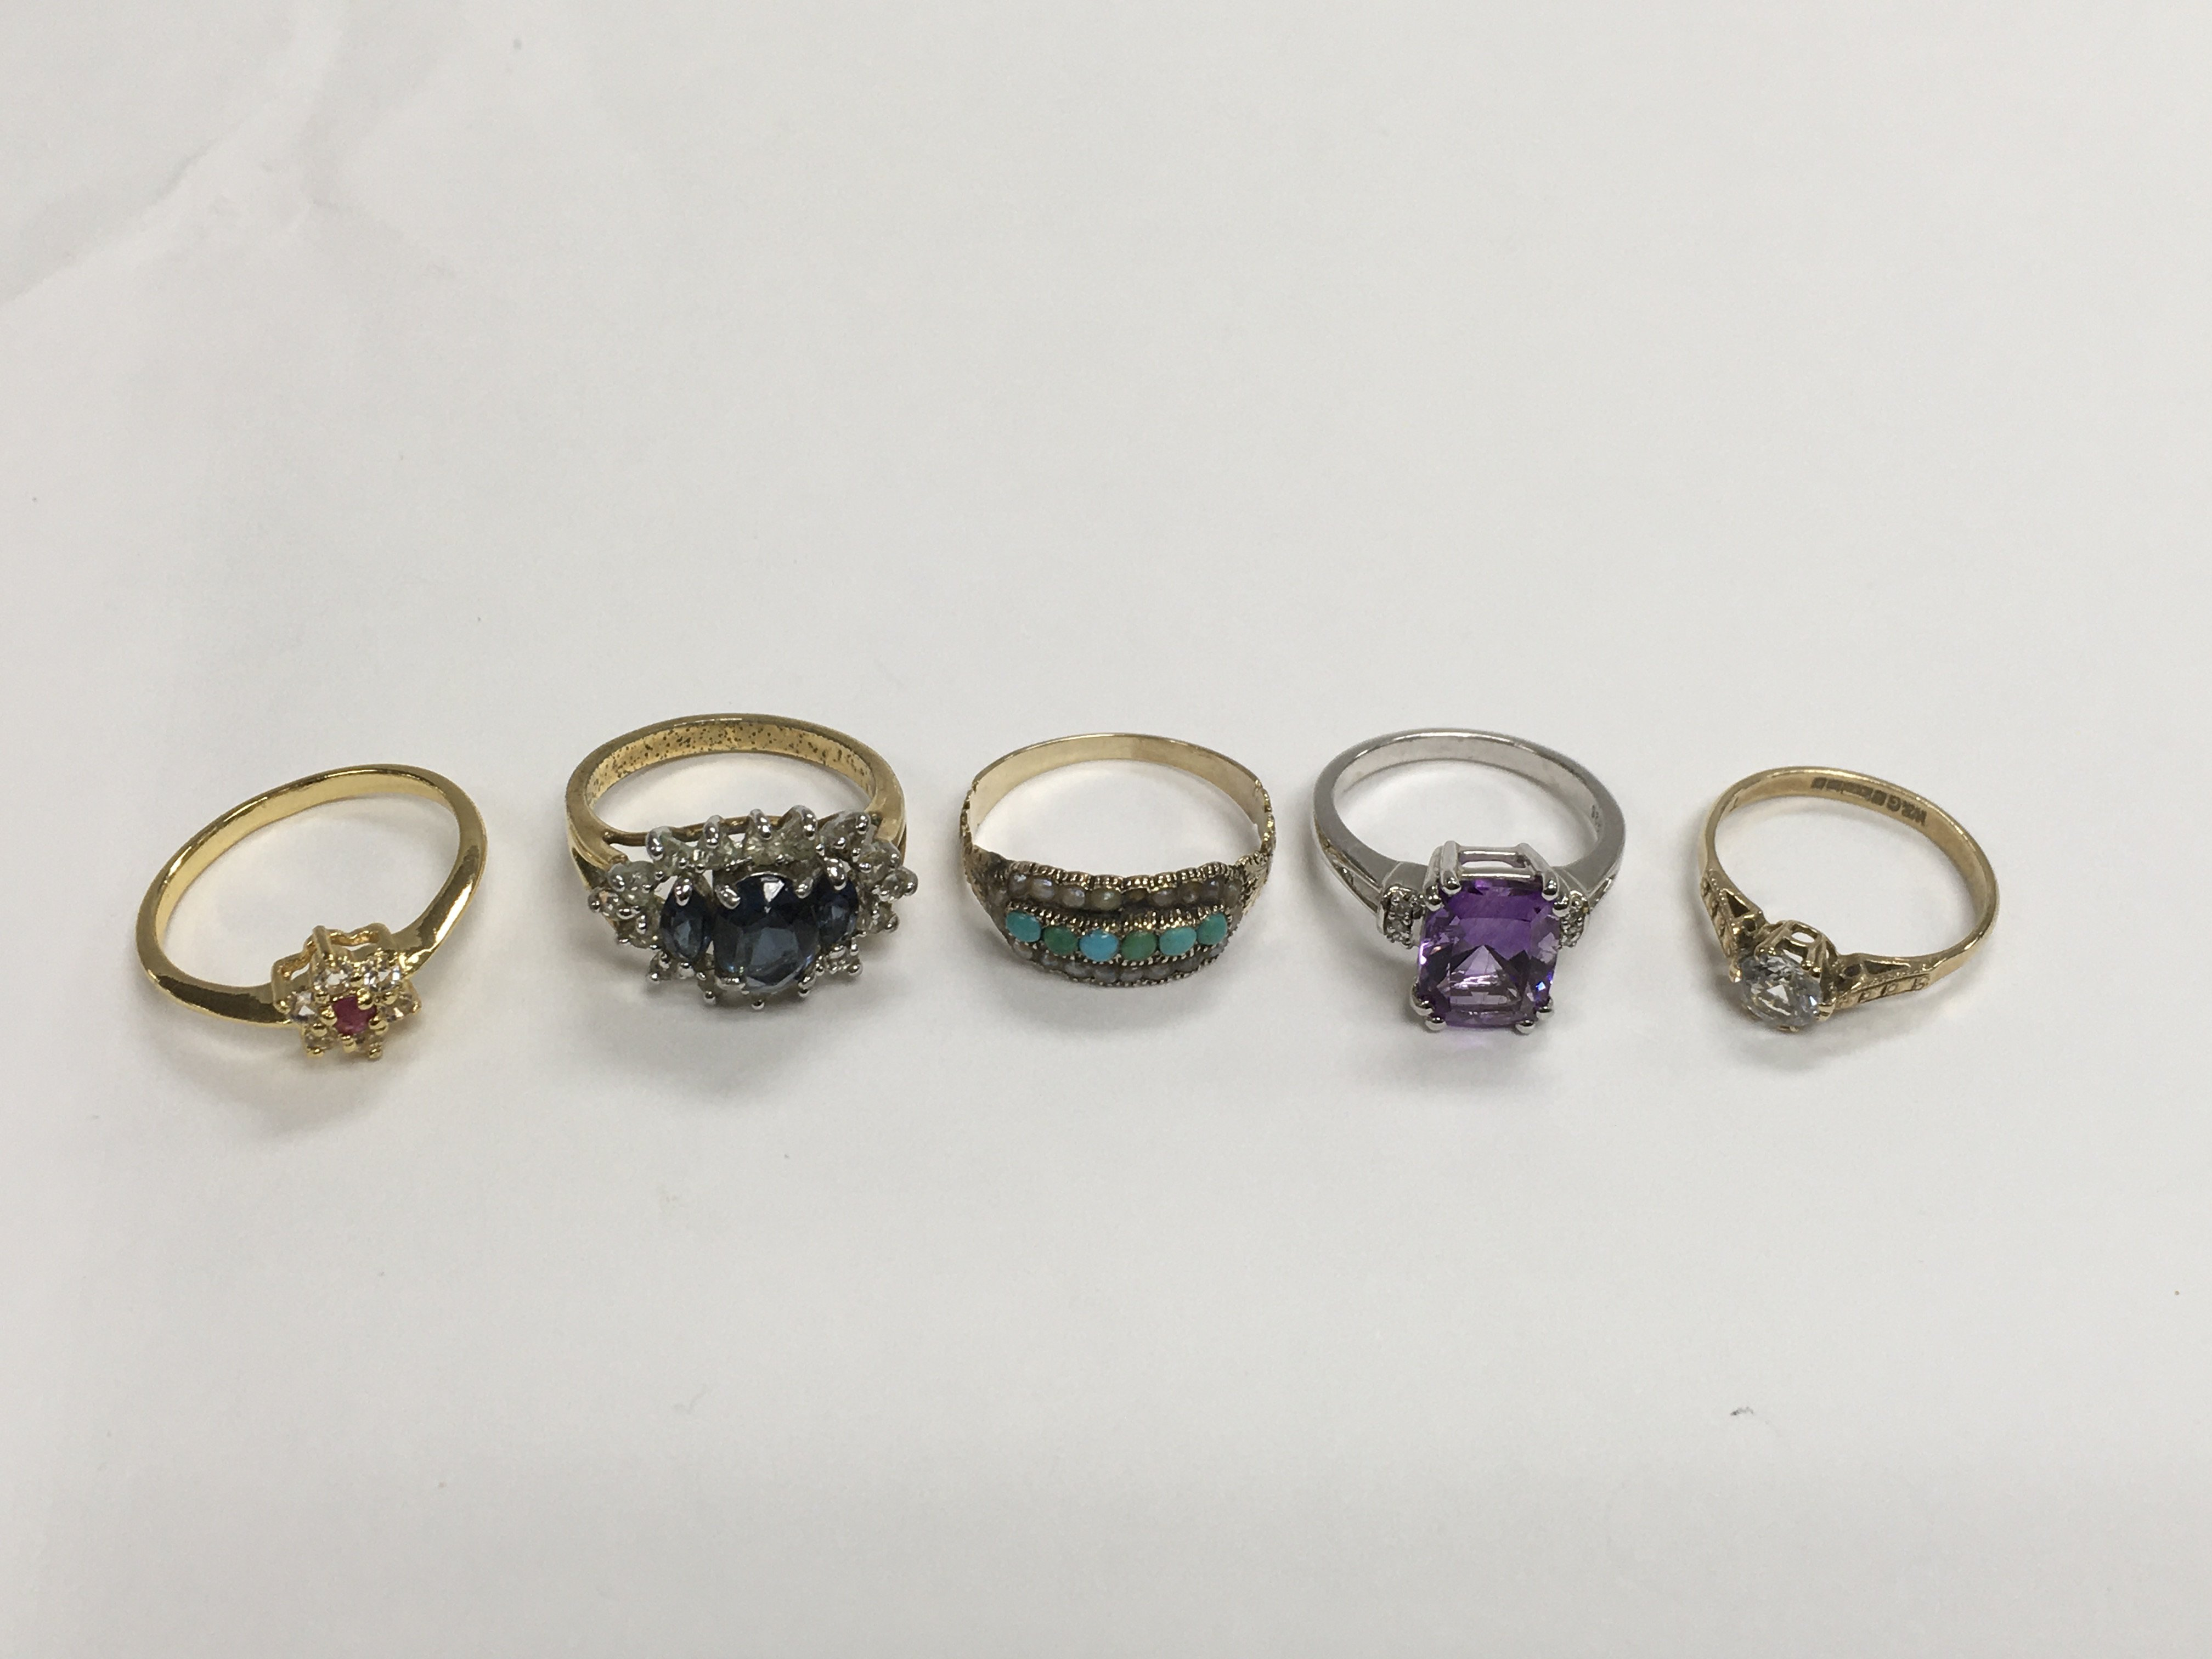 Lot 26 - A collection of gold and costume jewellery rings.